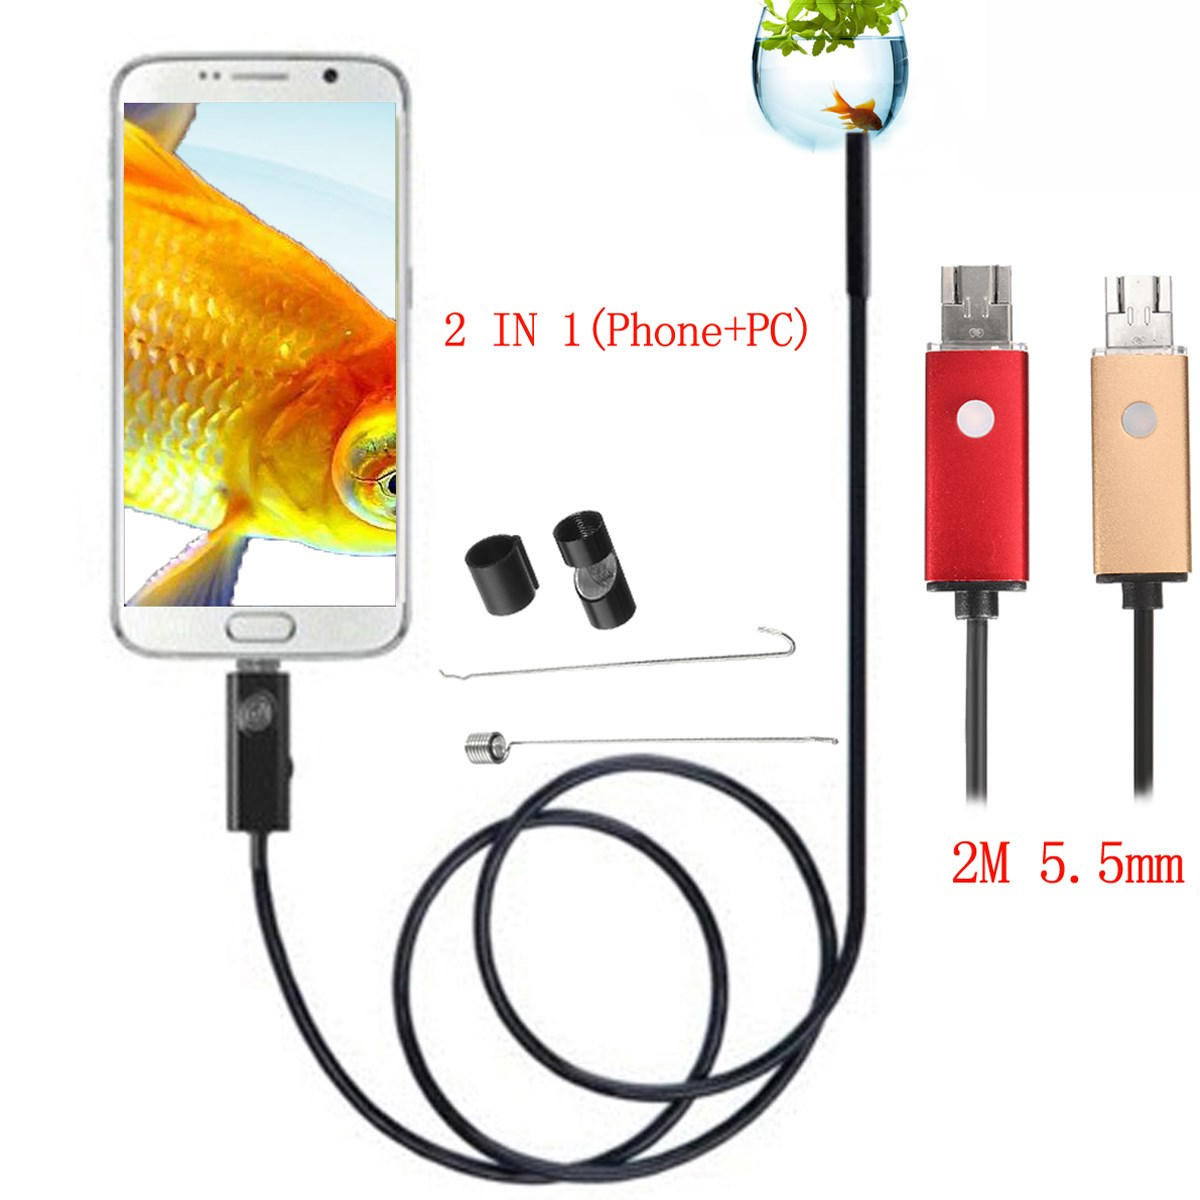 NEW 2 In 1 2M 5.5mm 6 LED USB Endoscope Inspection Camera Waterproof For Phone PC Android Borescope Camera автоинструменты new design autocom cdp 2014 2 3in1 led ds150